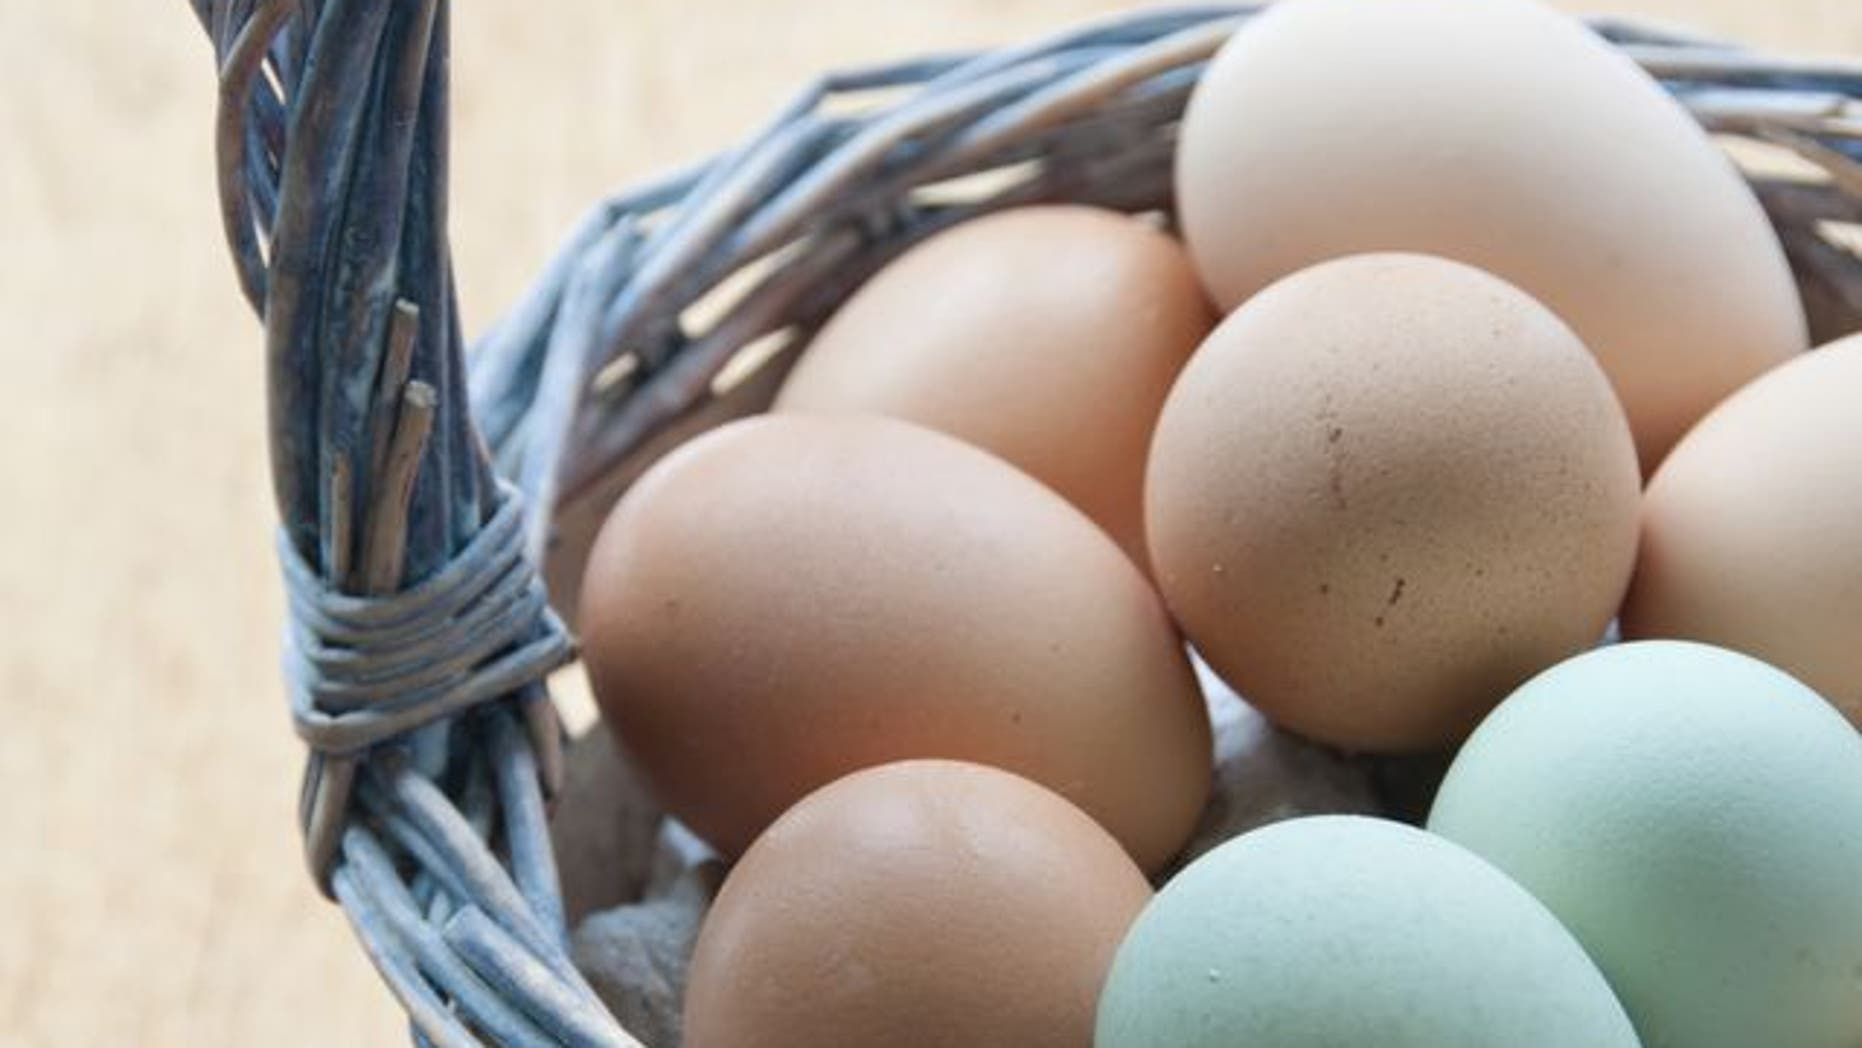 One farmer is out dozens of natural pastel-colored eggs just before Easter after a massive chicken theft.